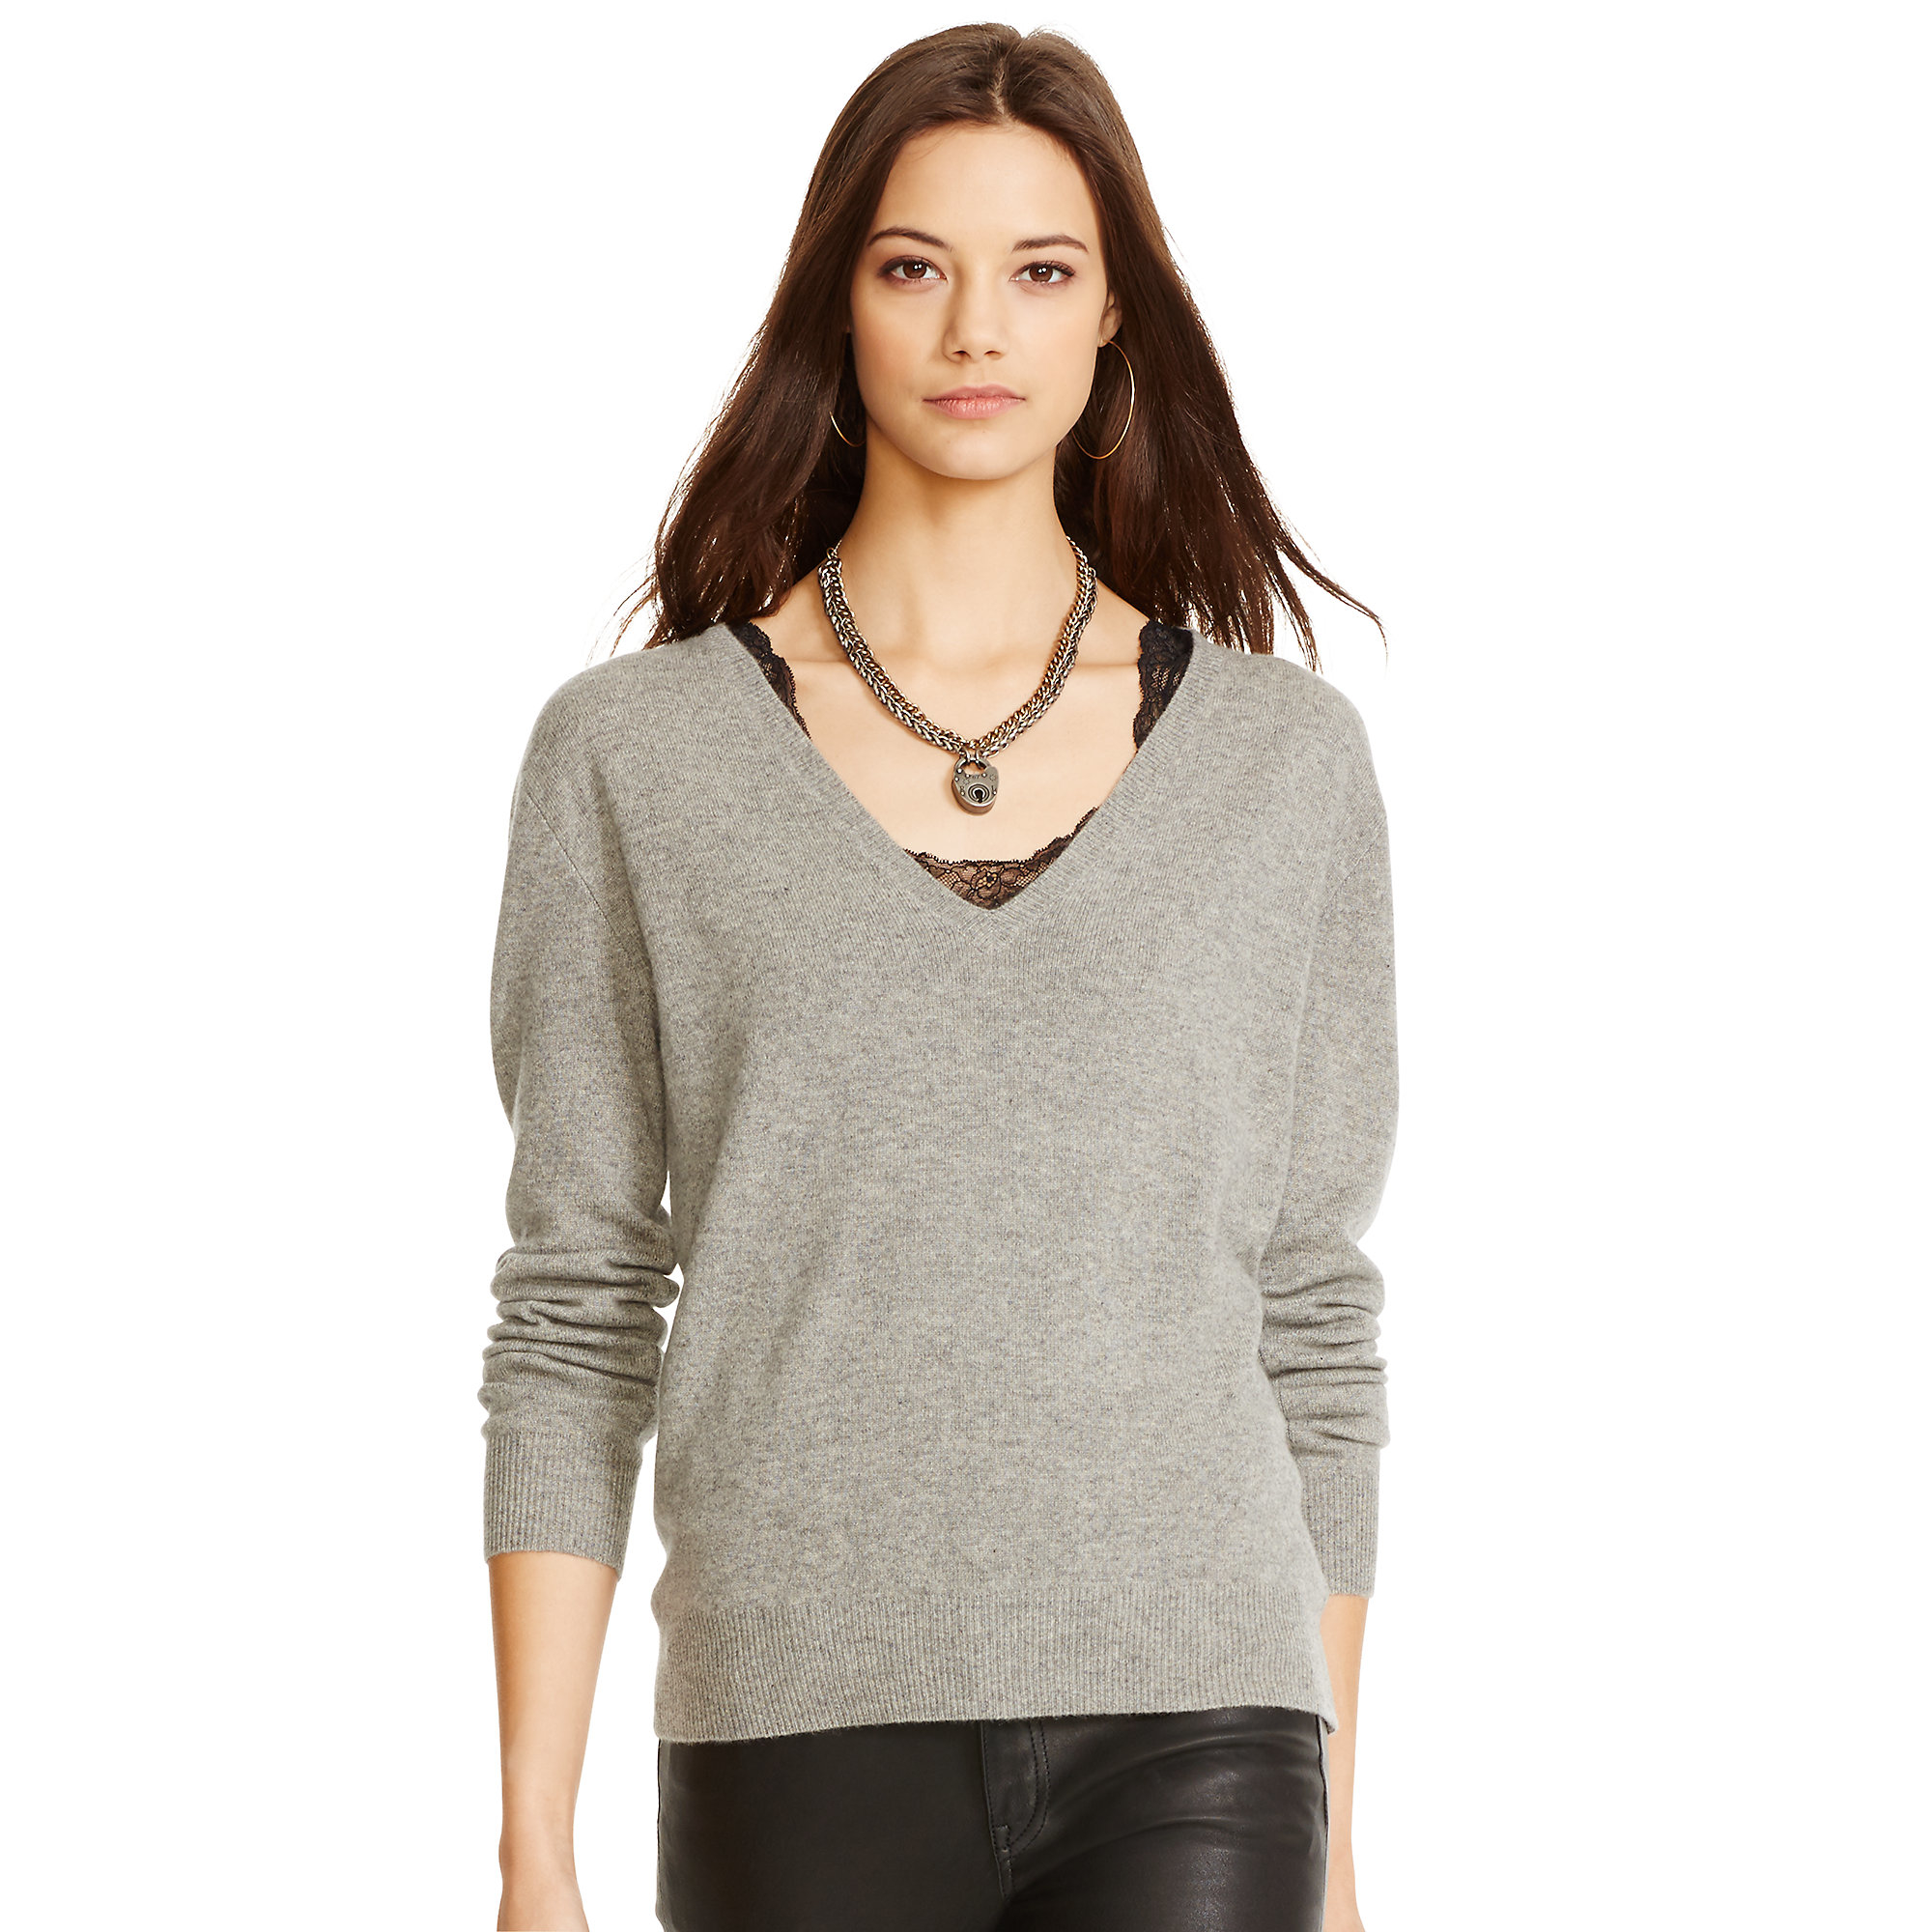 Our pullover tunic is knit with directional stitches and subtle allover texture. A chevron pattern at the center front adds even more surface interest.